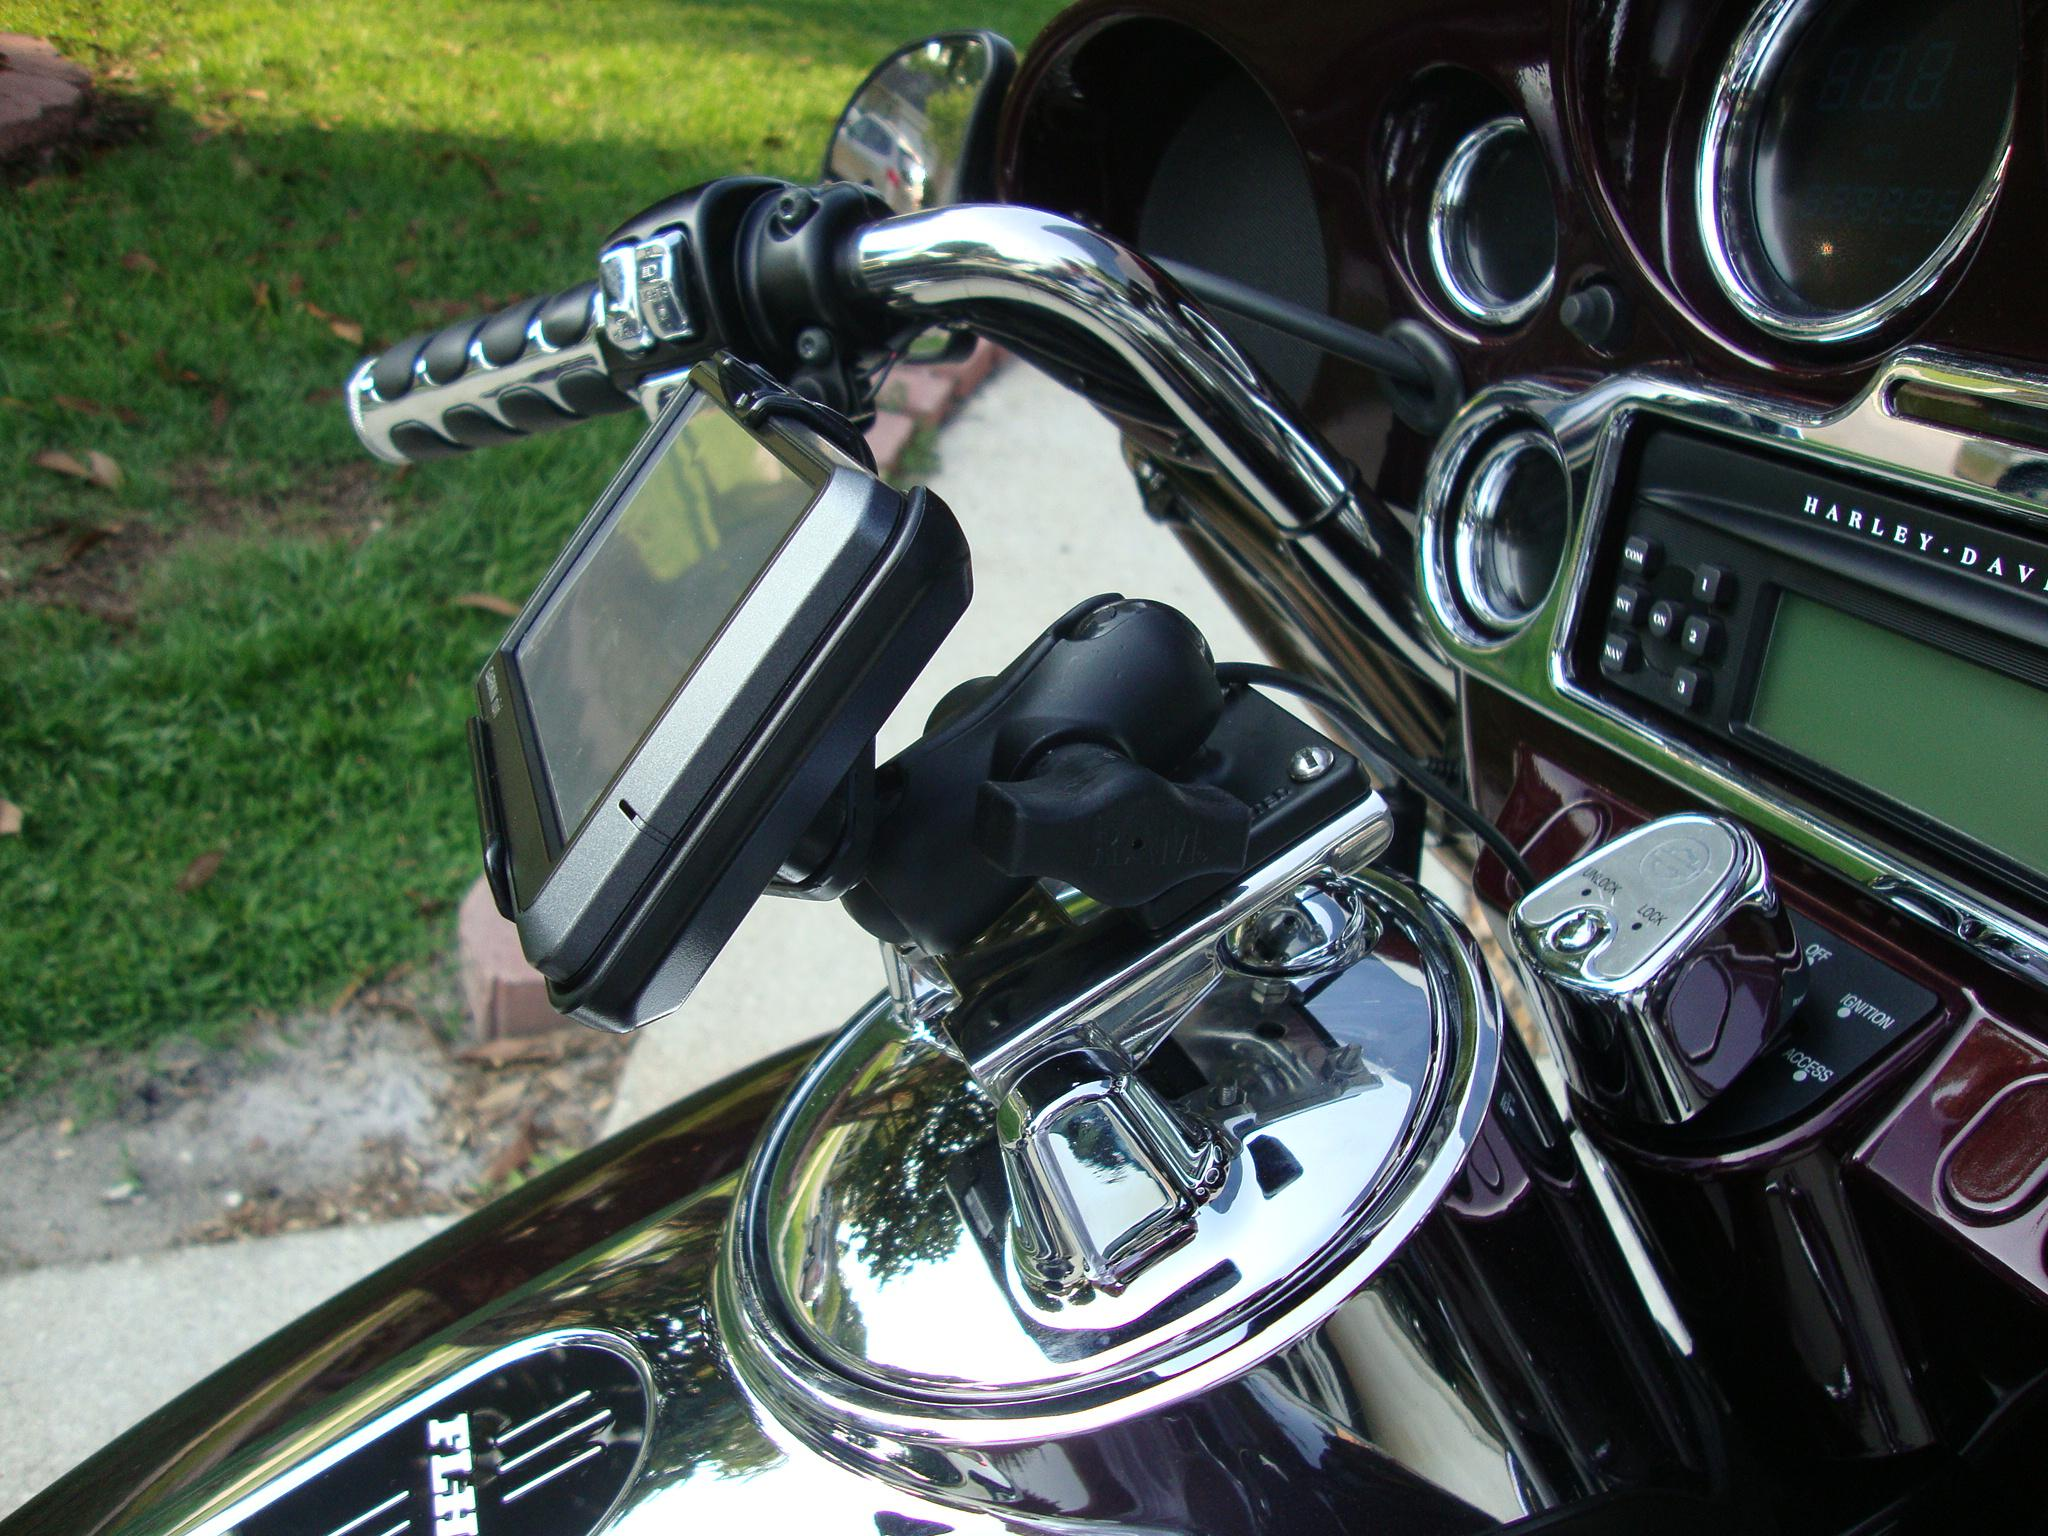 XMXCZKJ Motorcycle Mobile Phone Holder Support Moto